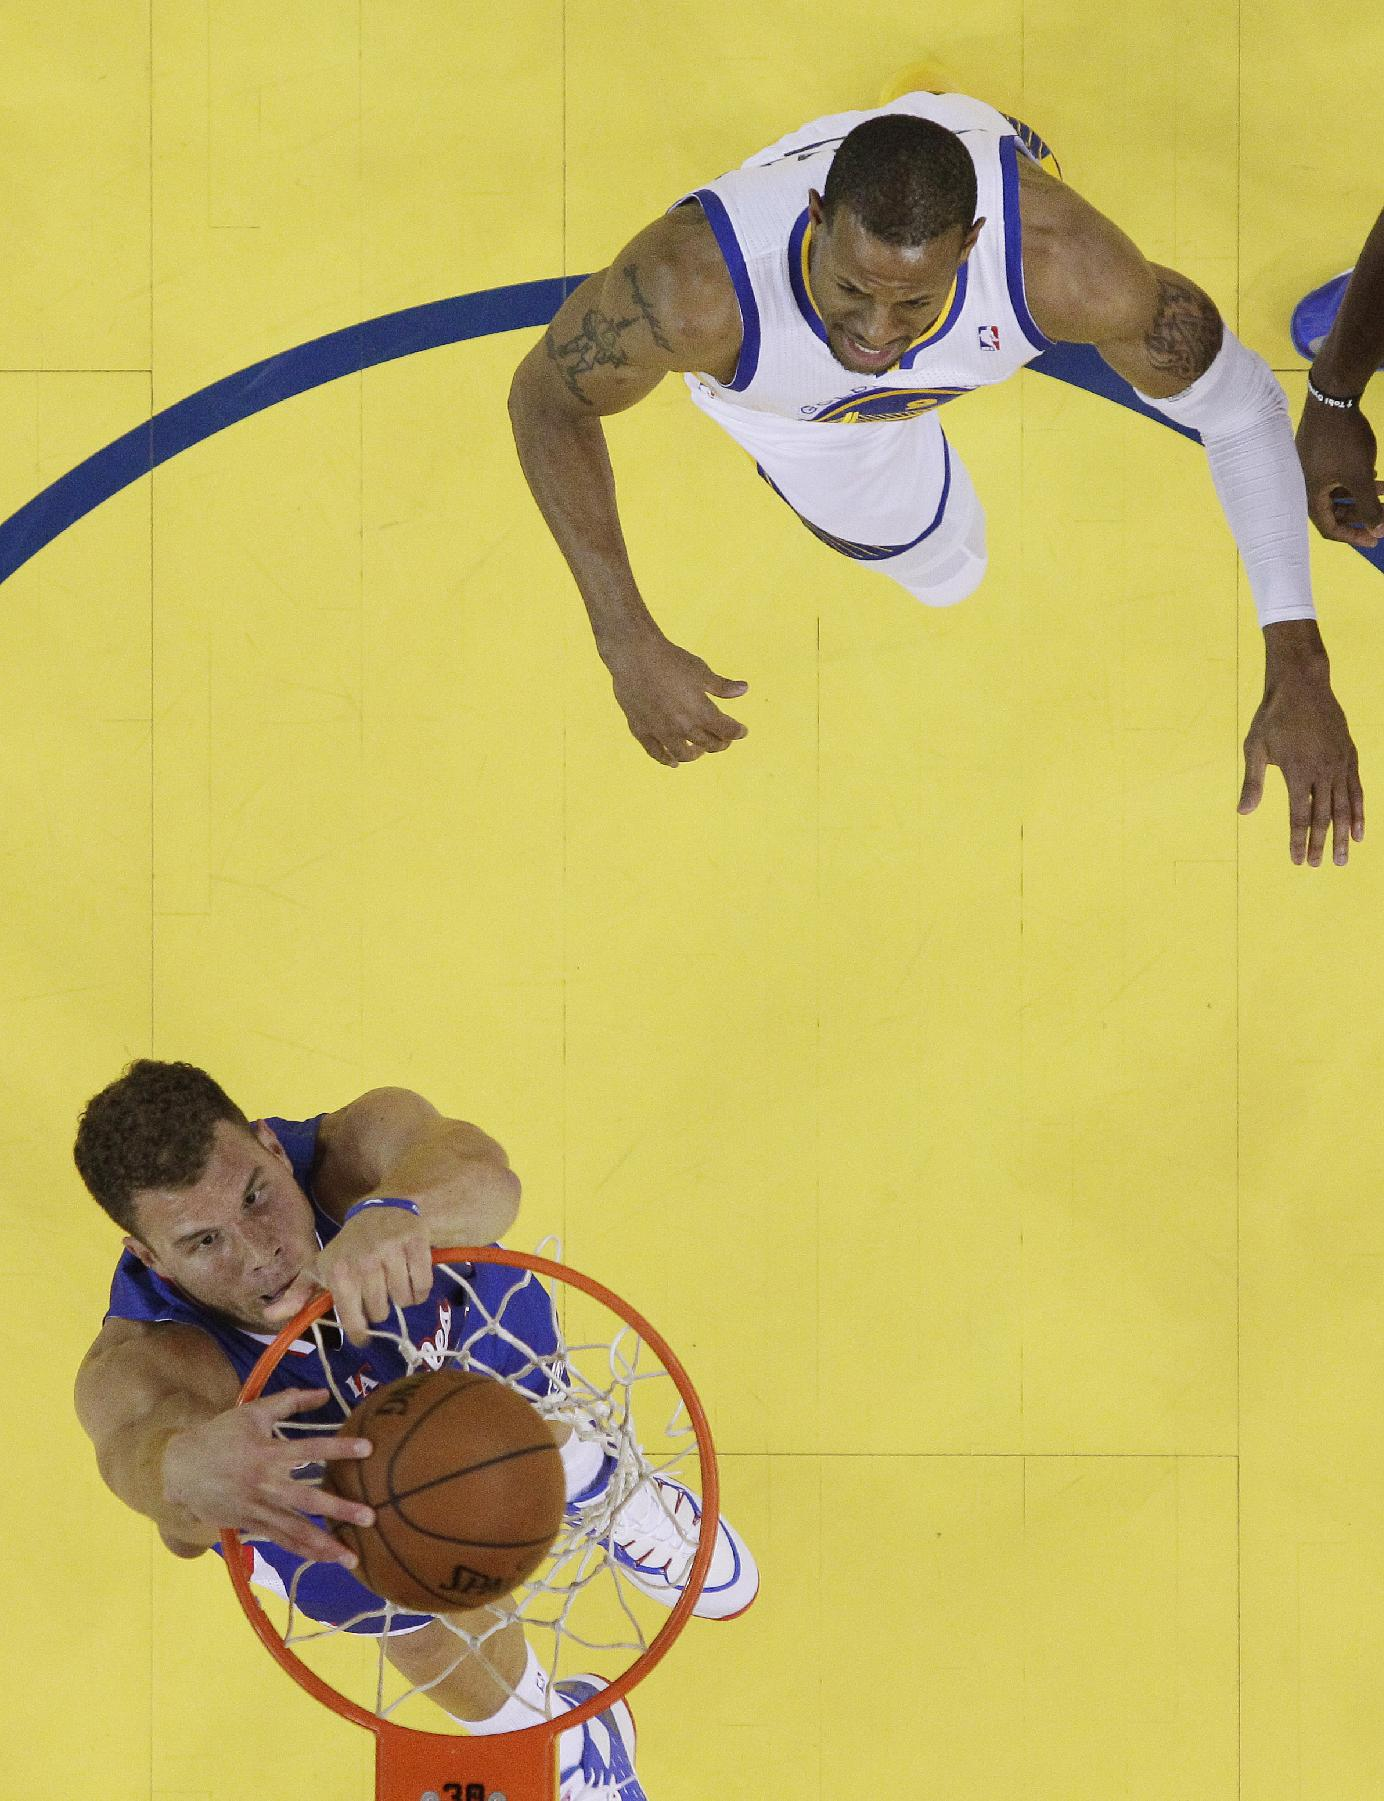 CORRECTS BYLINE - Los Angeles Clippers' Blake Griffin, bottom dunks past Golden State Warriors' Andre Iguodala during the first half in Game 3 of an opening-round NBA basketball playoff series on Thursday, April 24, 2014, in Oakland, Calif. Los Angeles won 98-96